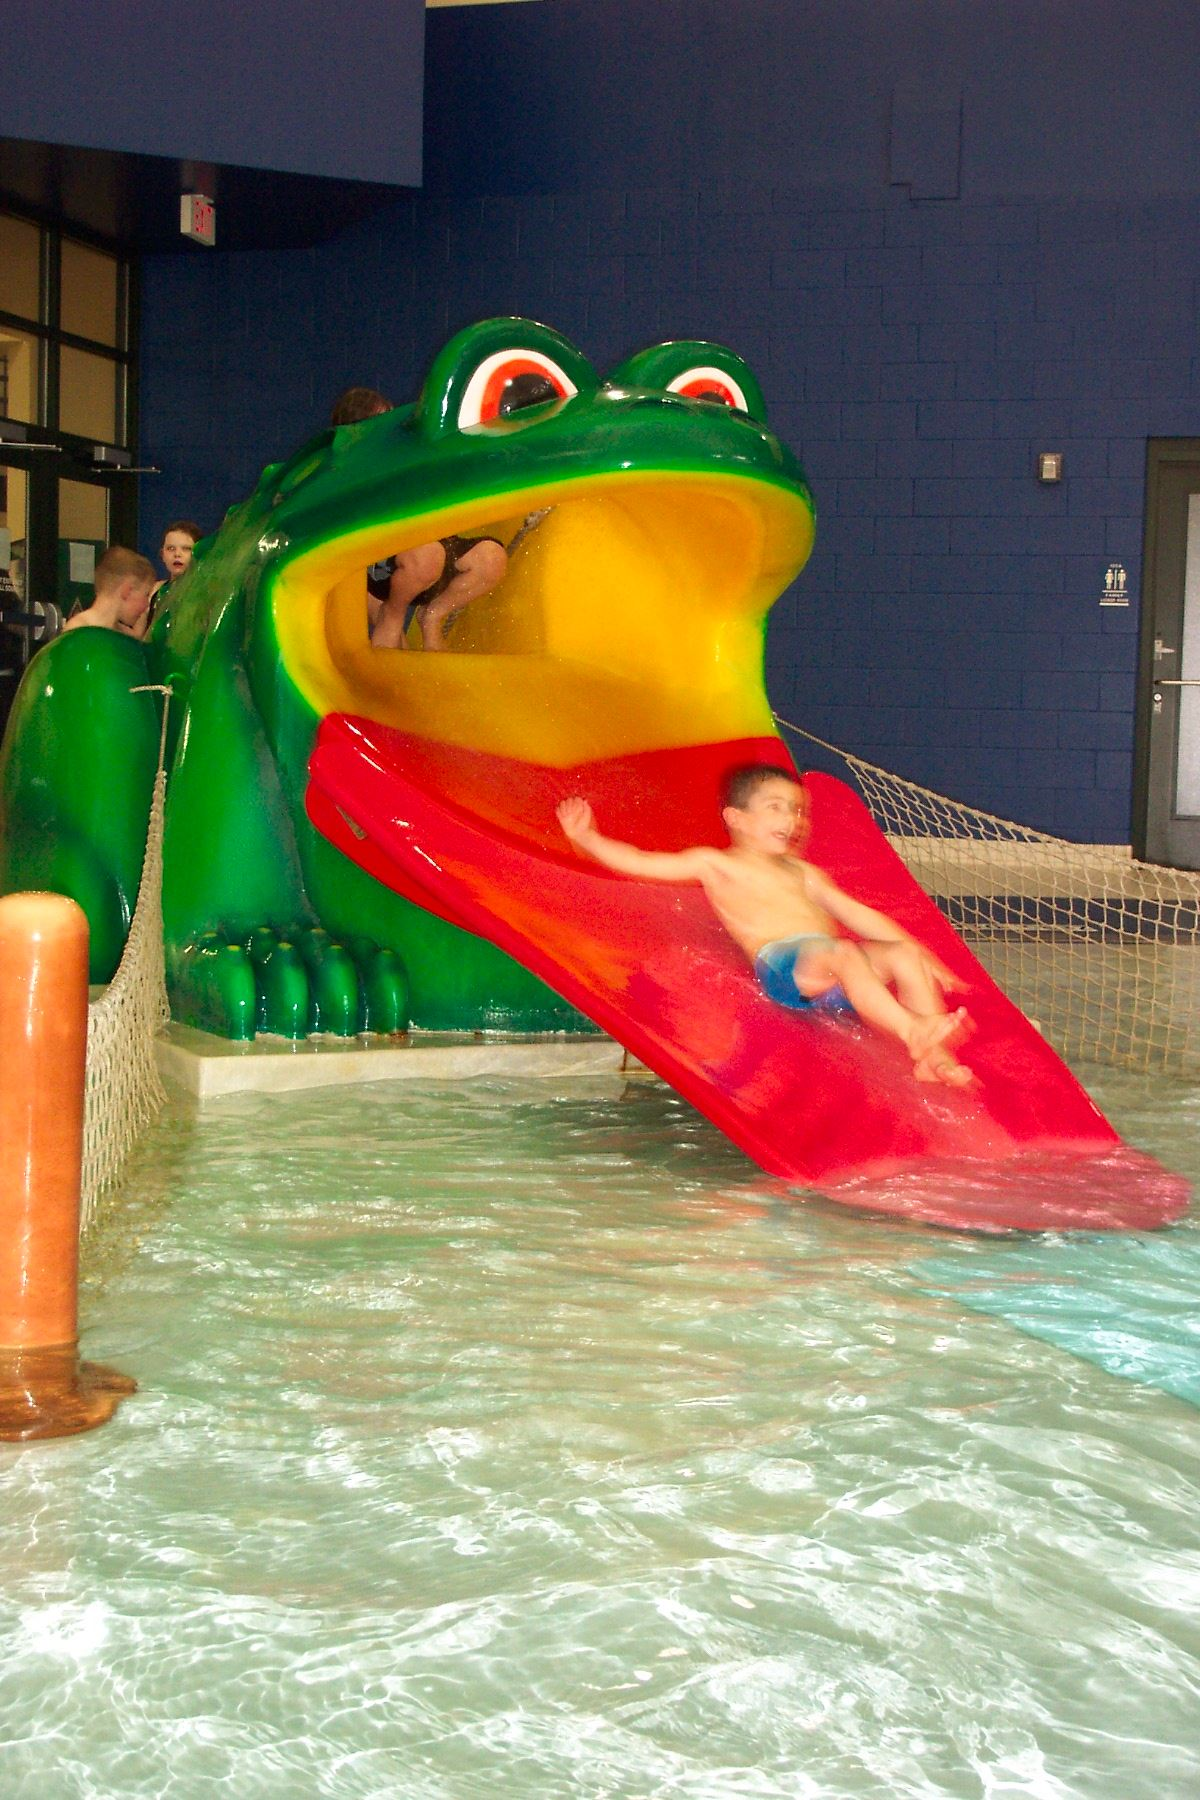 Children playing on a waterslide that looks like a frog.